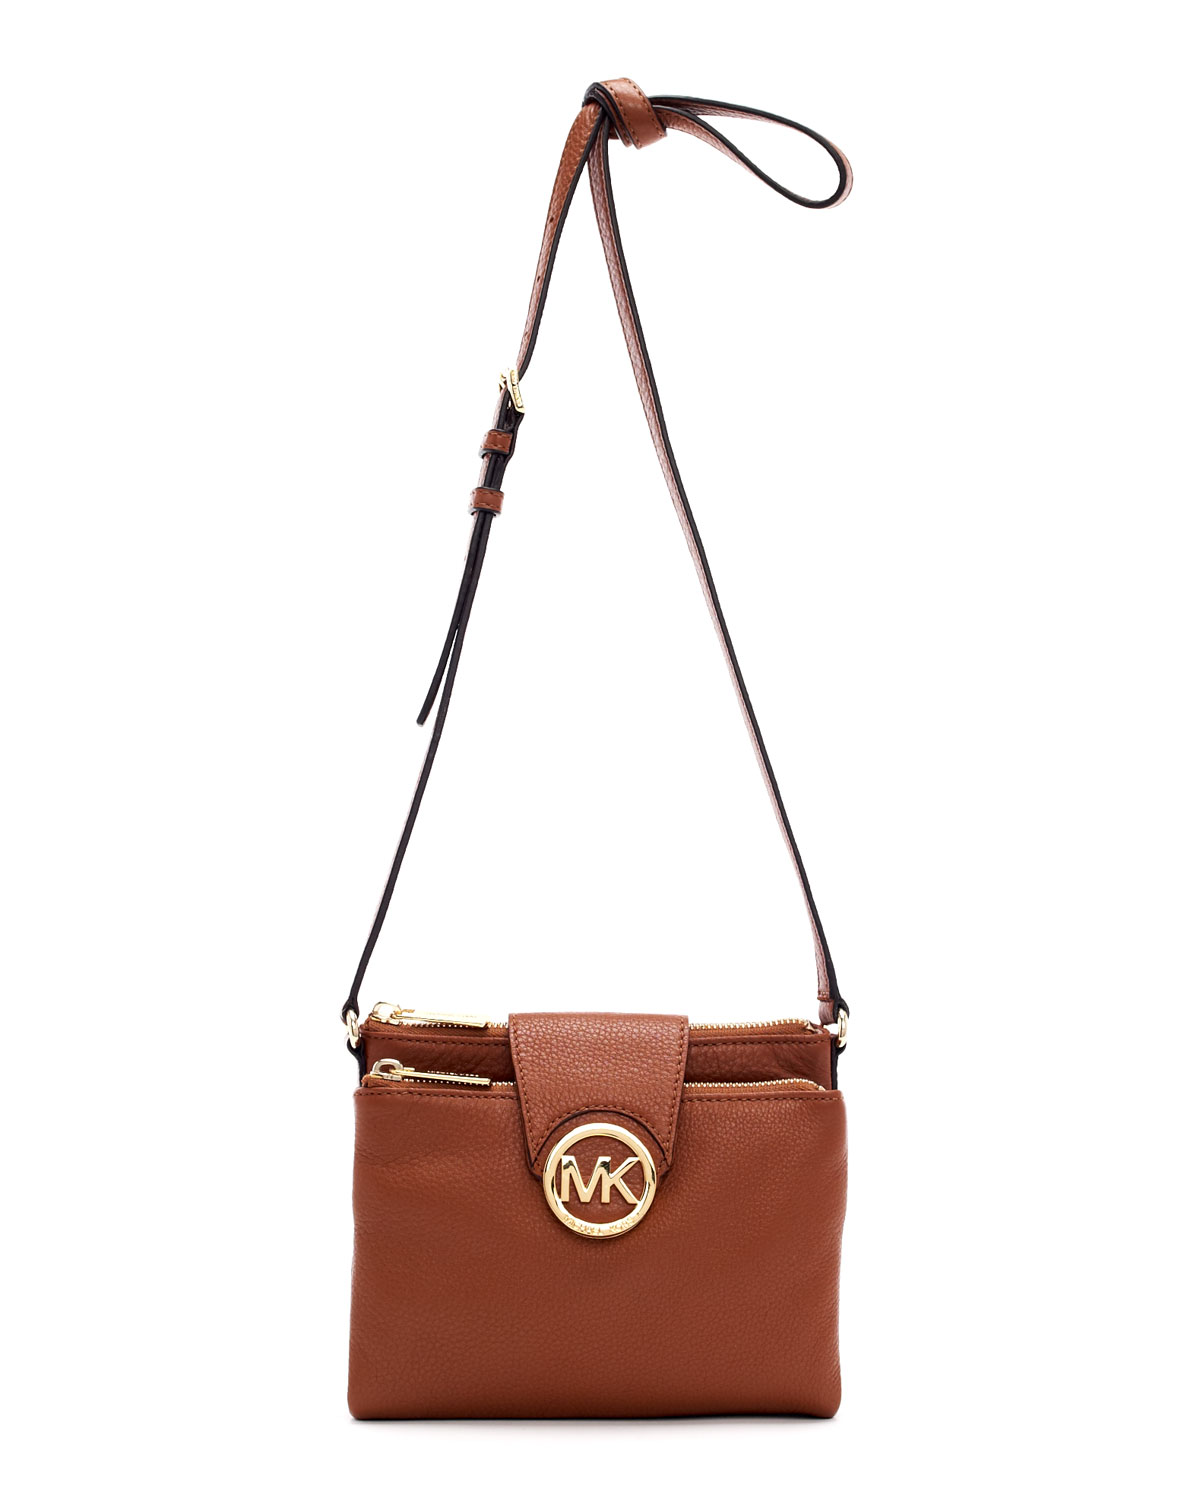 lyst michael kors large fulton pebbled crossbody in brown. Black Bedroom Furniture Sets. Home Design Ideas